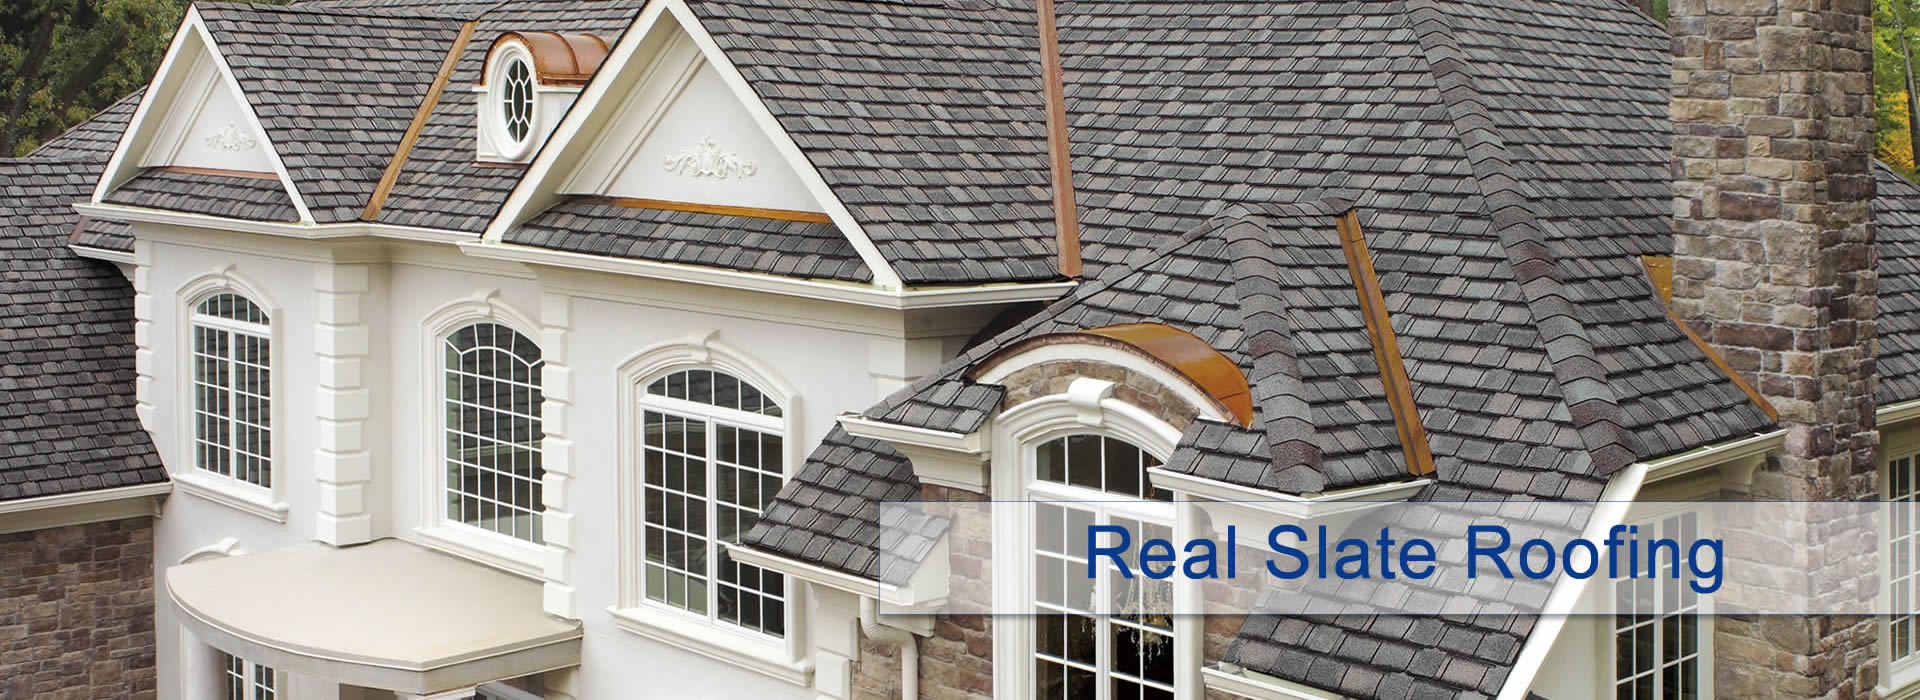 Real Slate Roofing Dallas Genuine Slate Roof Fort Worth Quality Slate Roofs Arlington Slate Roofing Contractors